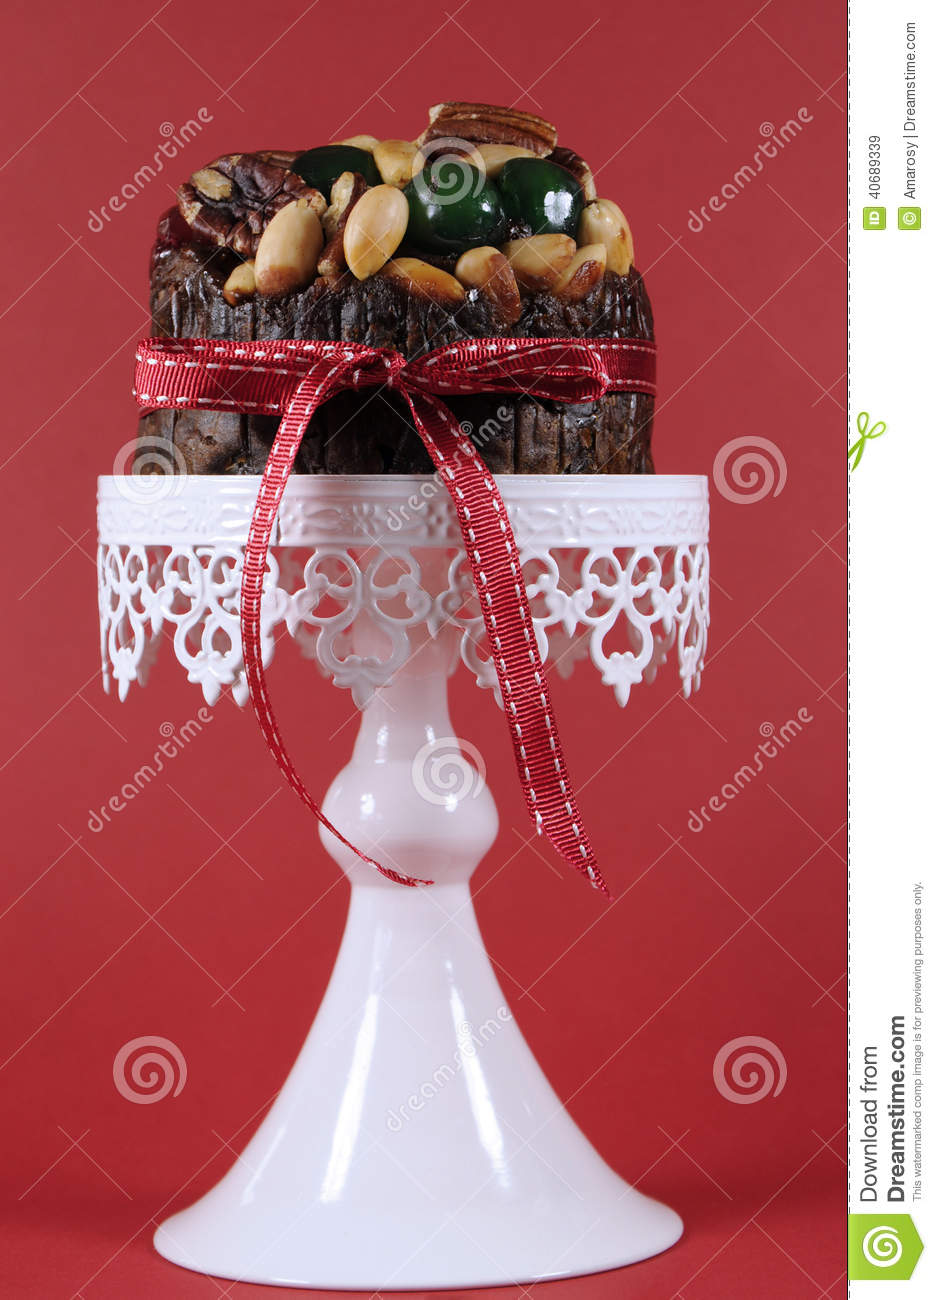 Festive Christmas Food, Fruit Cake With Glace Cherries And ...